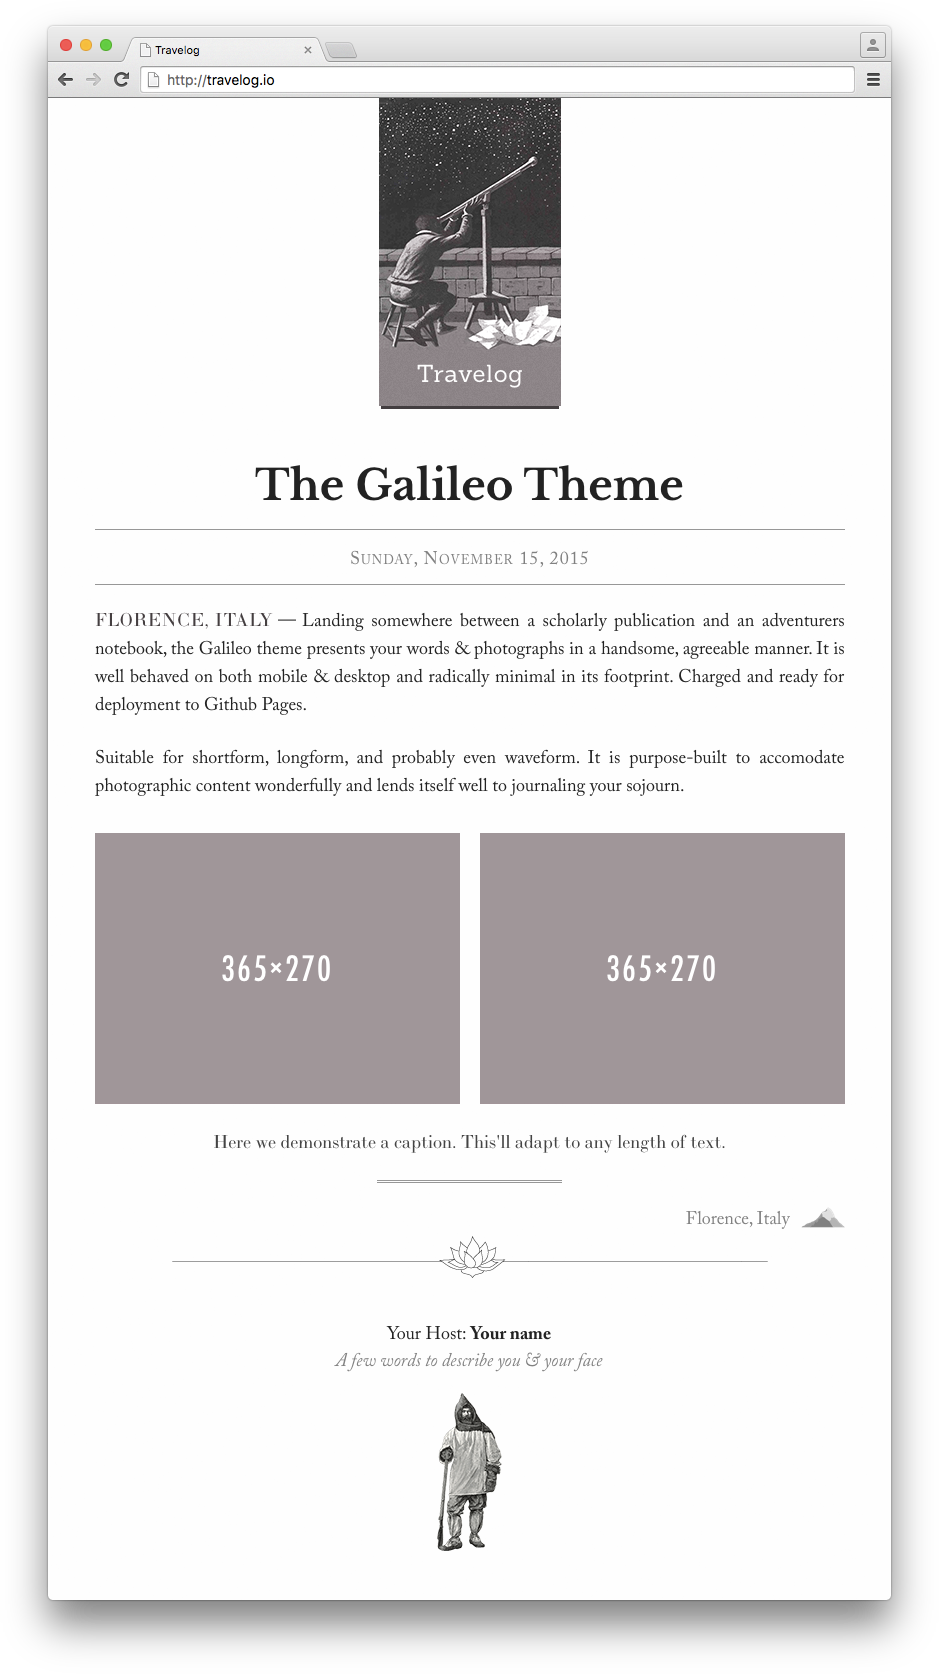 The Galileo Theme